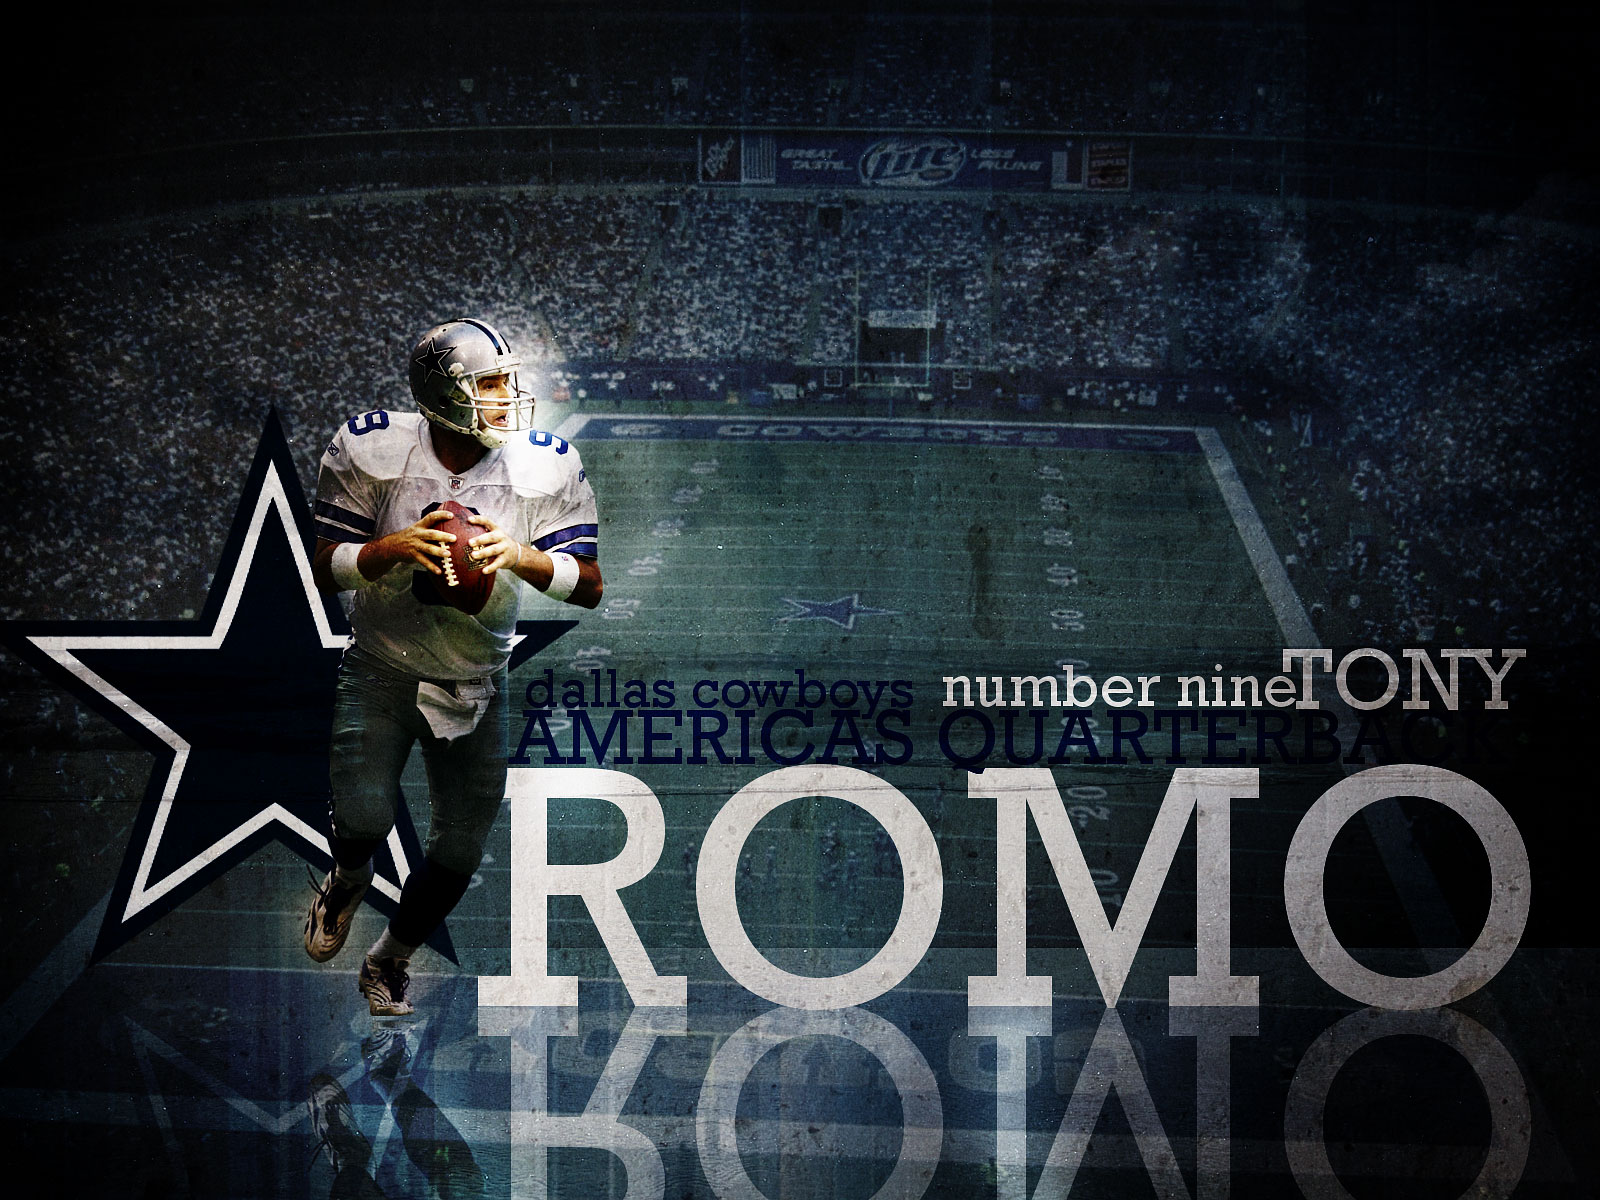 Free Nfl Dez Bryant Wallpaper Youtube 1600x1200